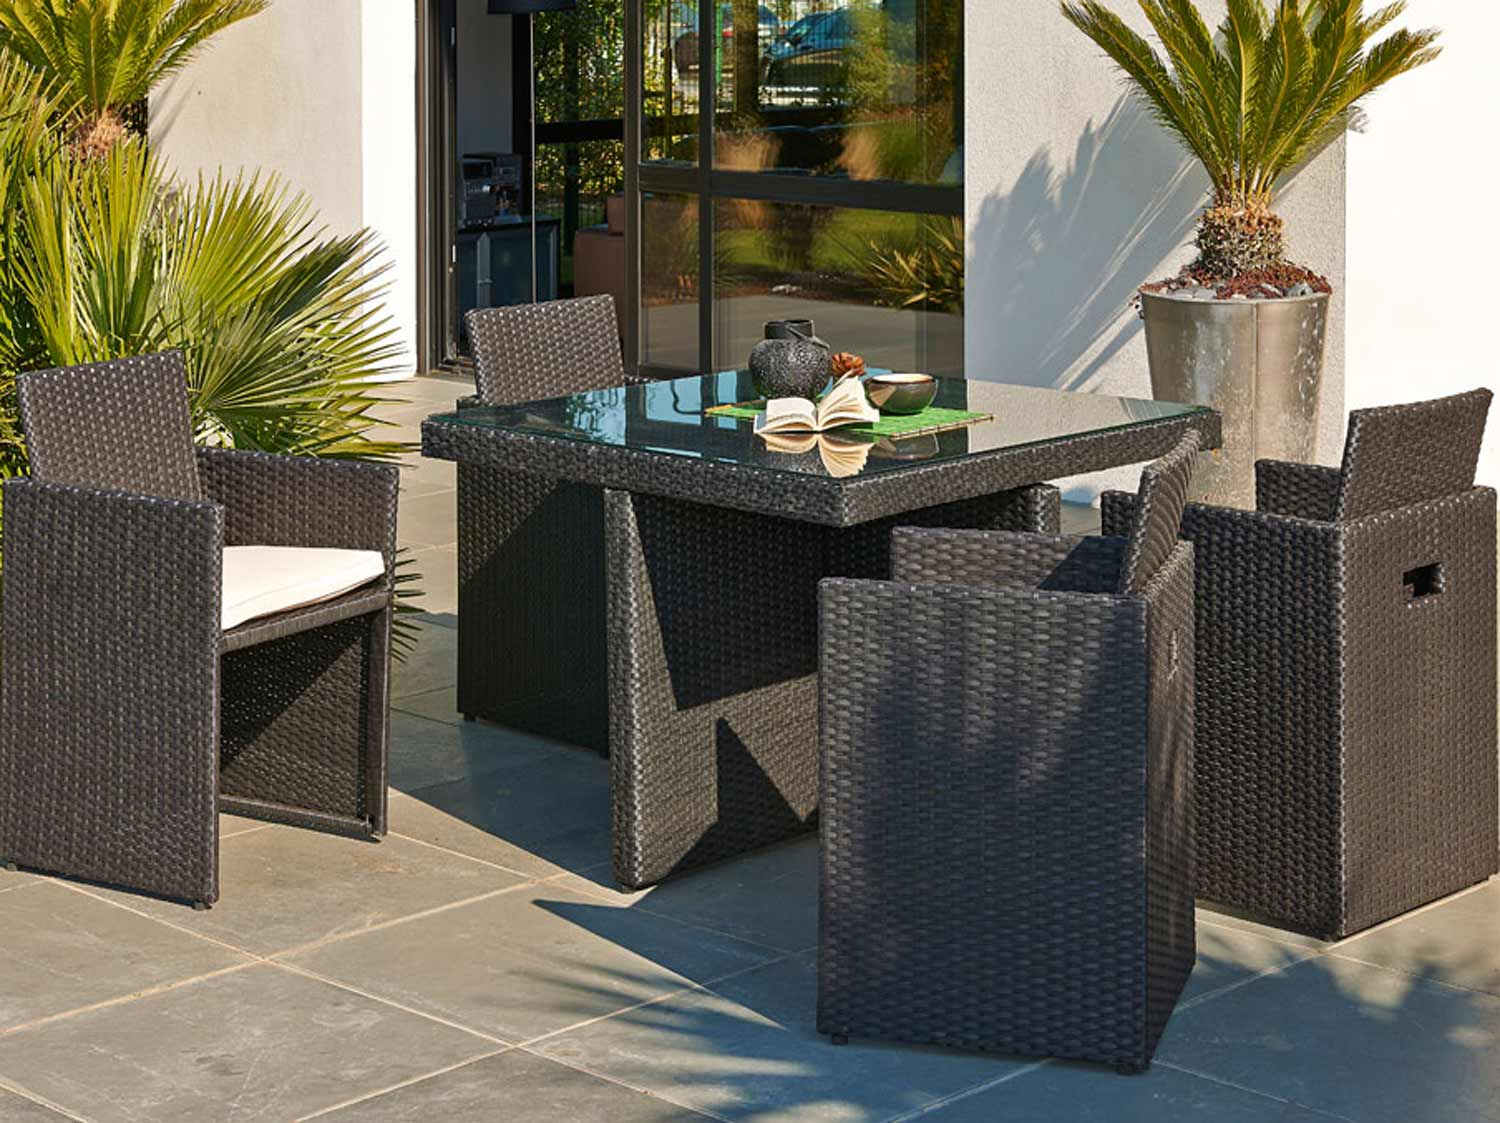 table jardin castorama blooma table de jardin en rotin comoro x cm with table jardin castorama. Black Bedroom Furniture Sets. Home Design Ideas